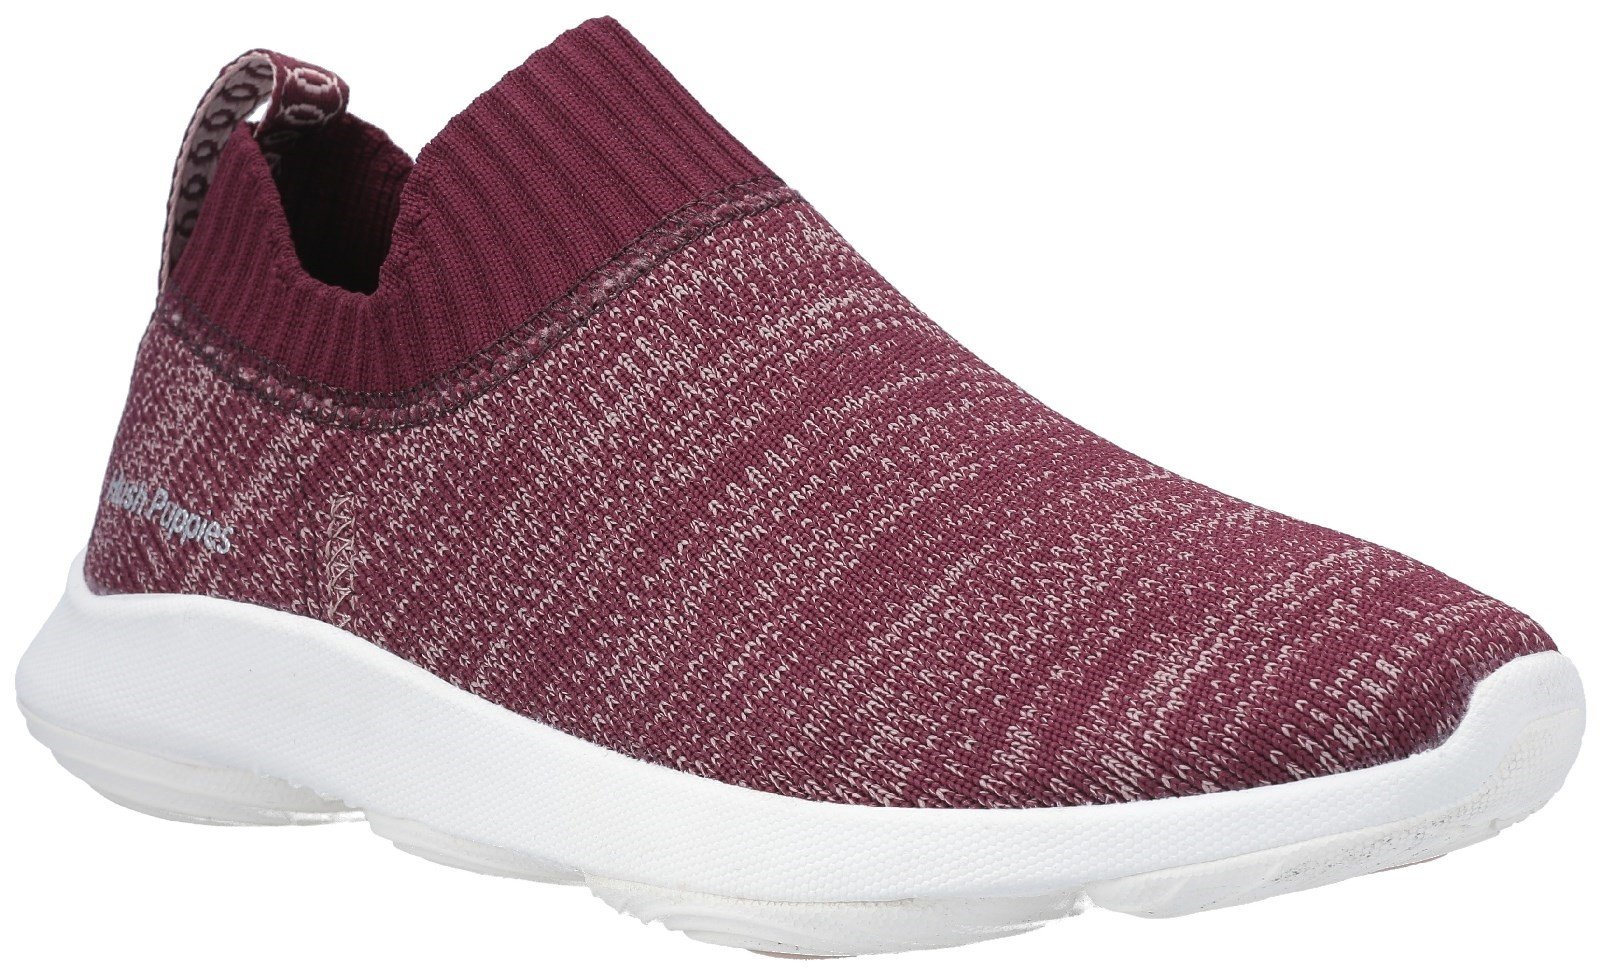 Hush Puppies Men's Free BounceMAX Slip On Trainer Various Colours 29240 - Dark Wine Knit 3